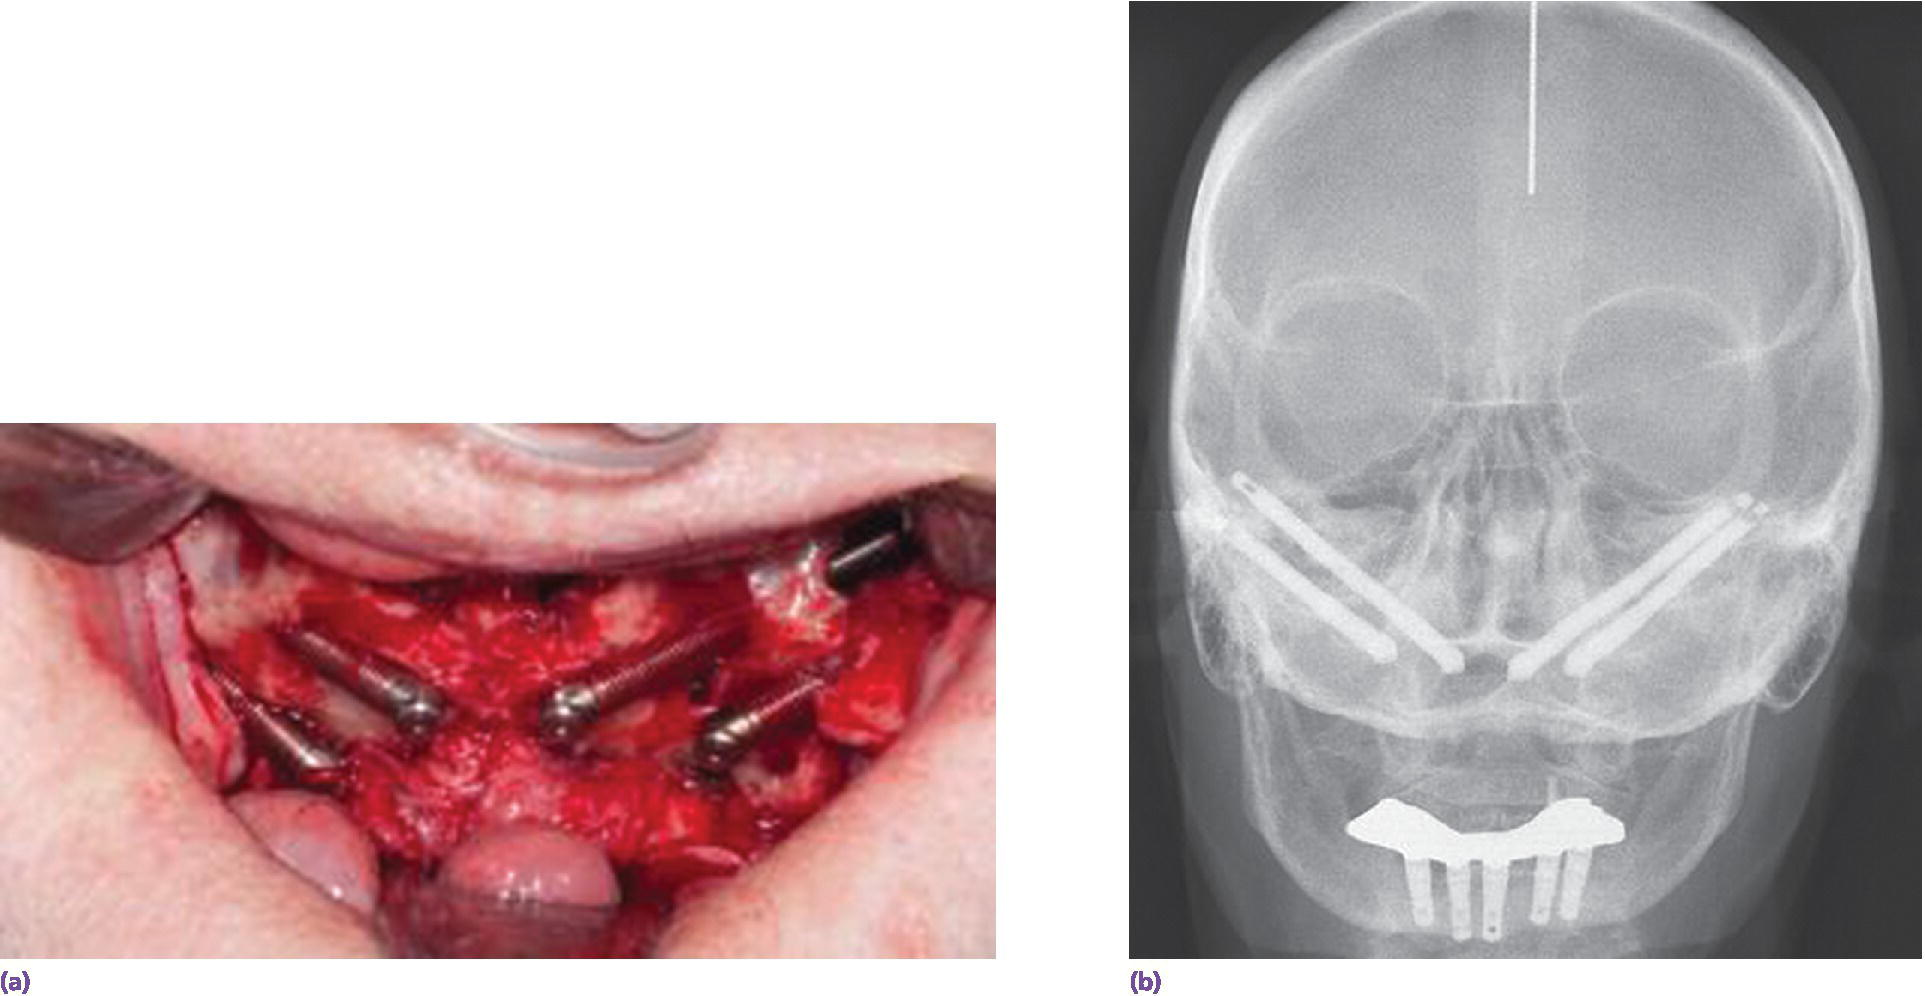 Photo of extended-length zygoma implants placed adjacent to atrophic maxilla (left). Radiograph of clinical view with precision-fit electrical-discharged machined metal-based overdenture (right).